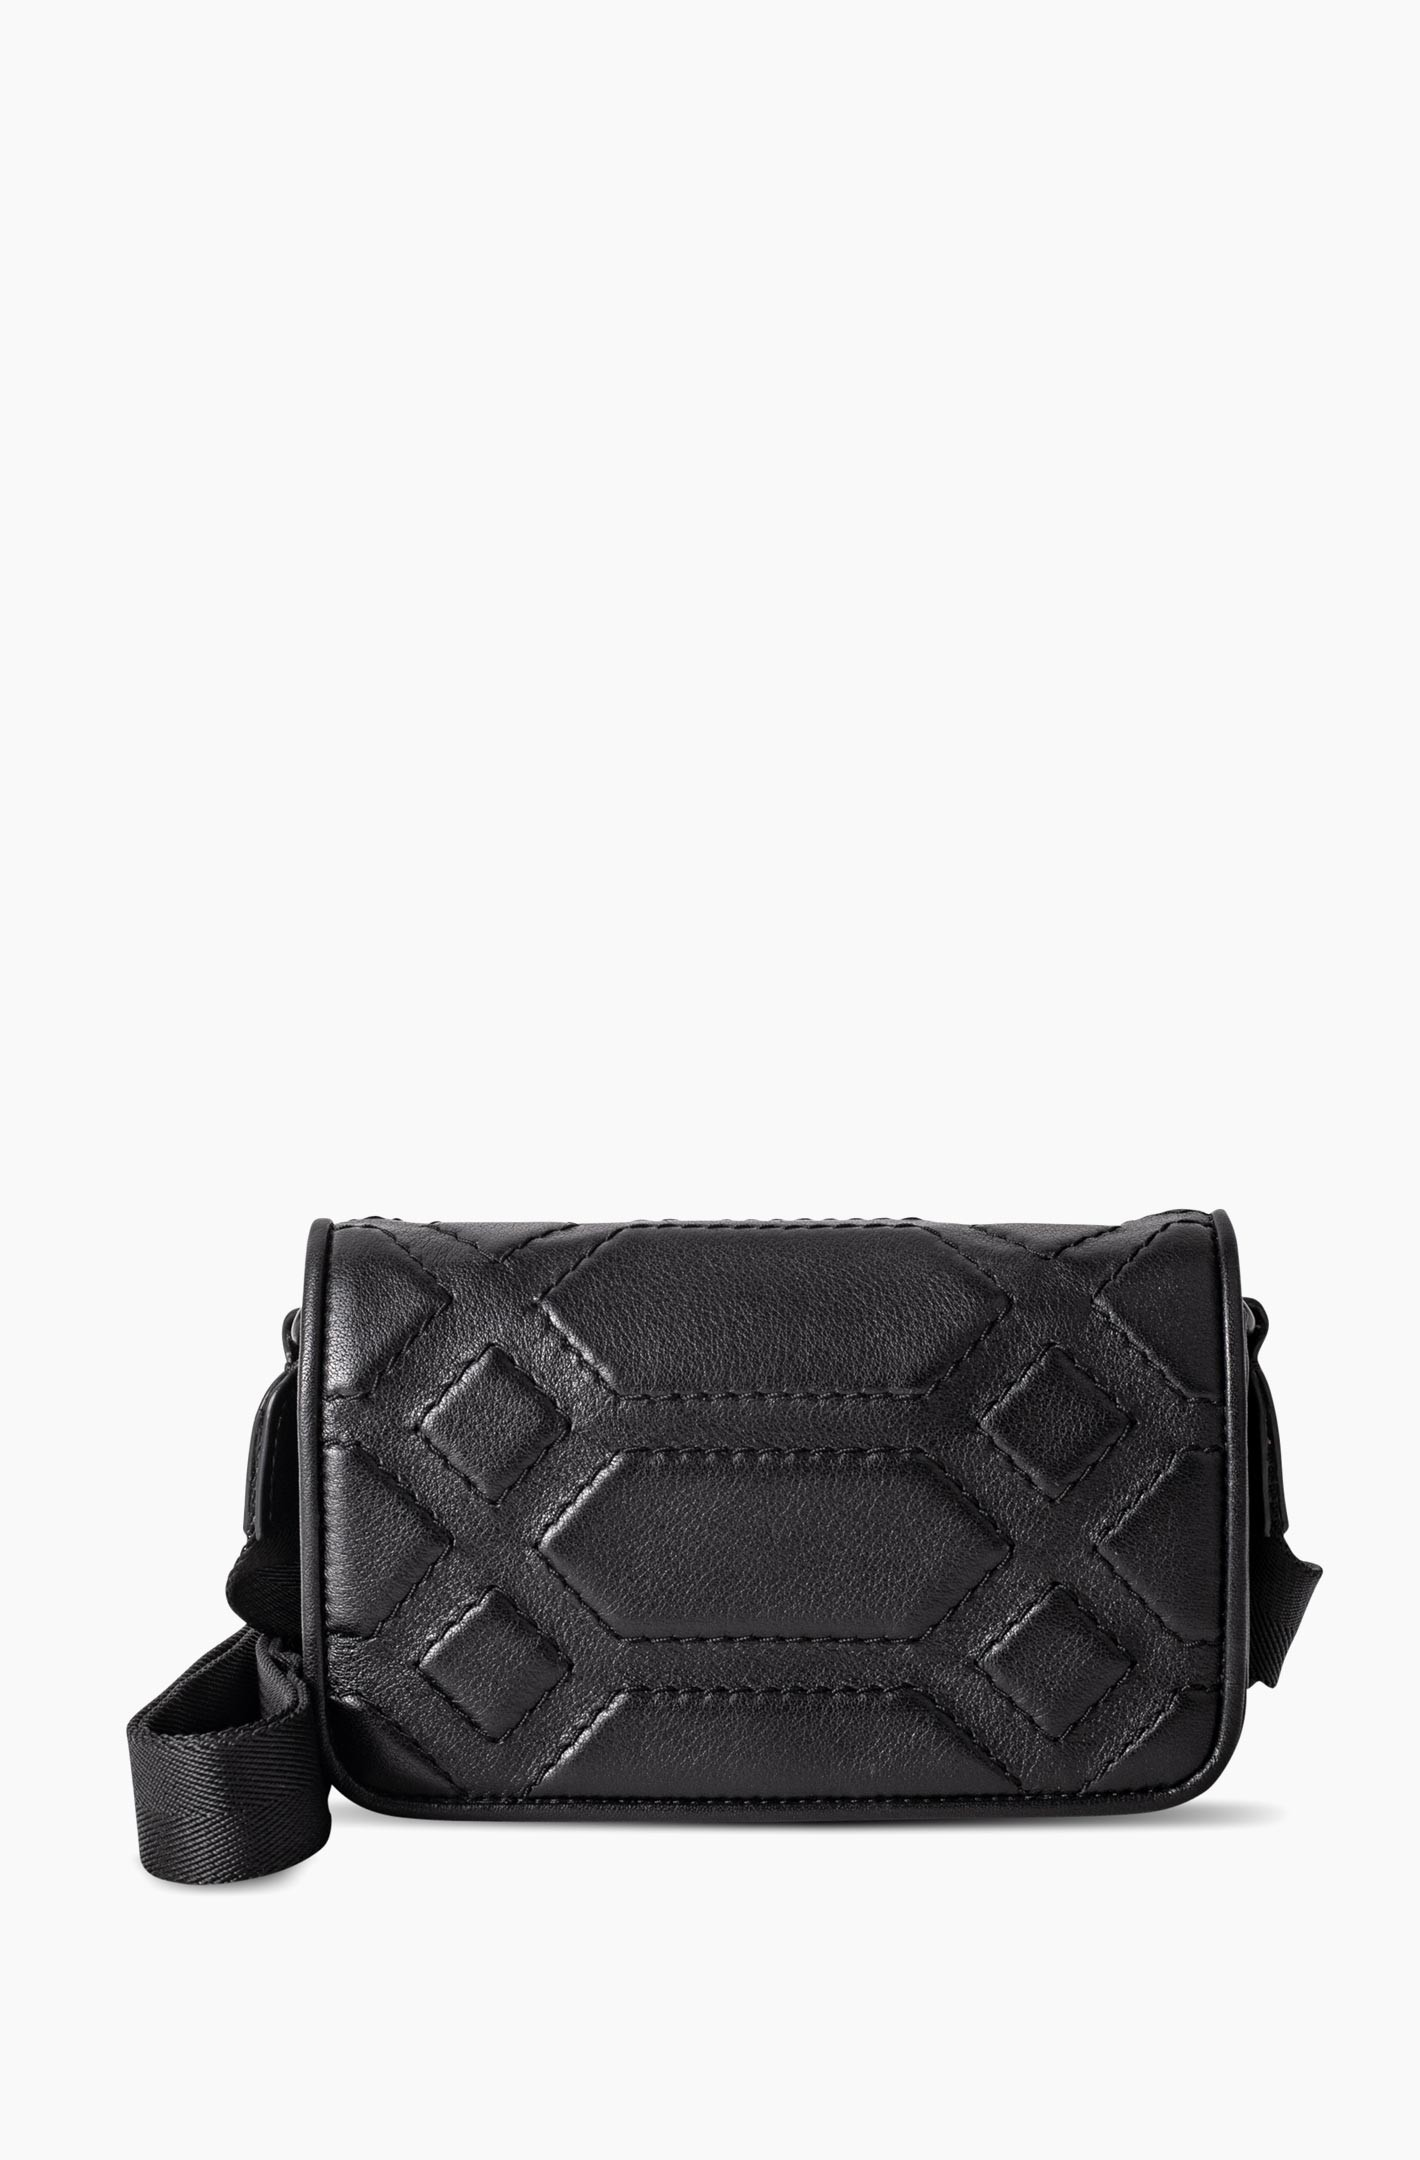 Game On Mini Crossbody